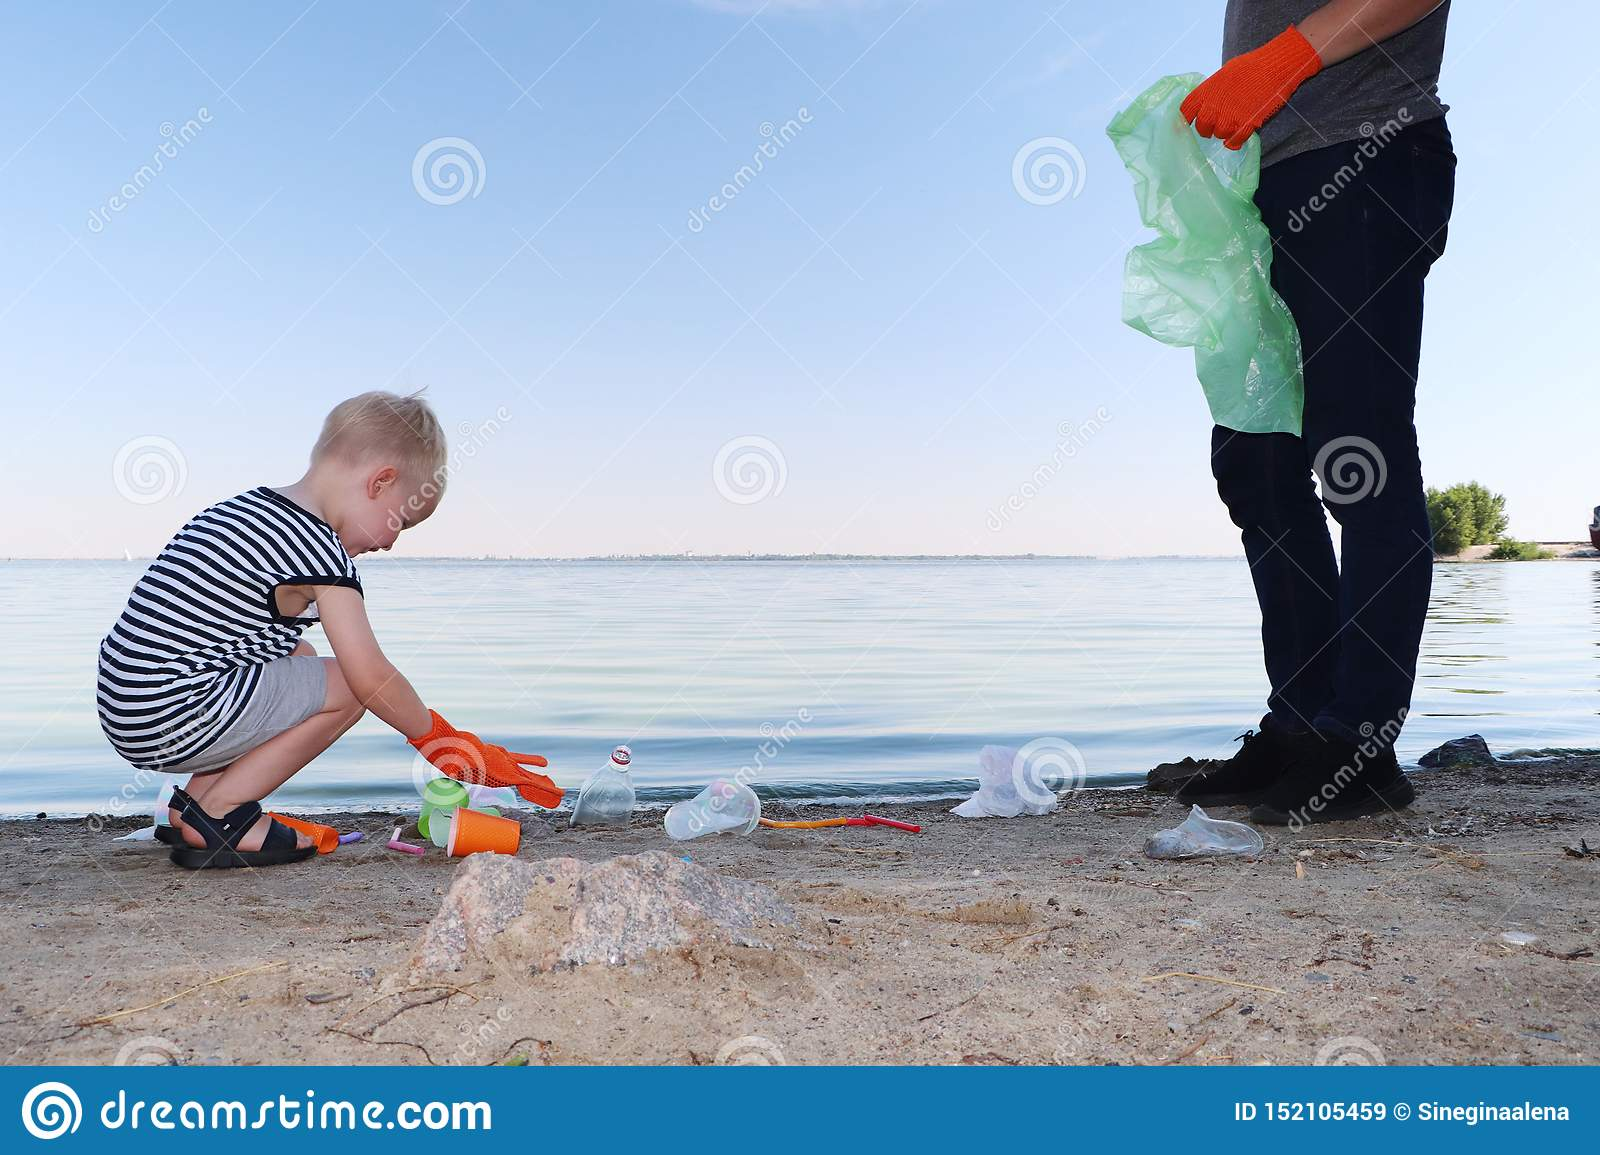 A small child collects trash on the beach. His dad points his finger where to throw garbage. Parents teach children cleanliness.